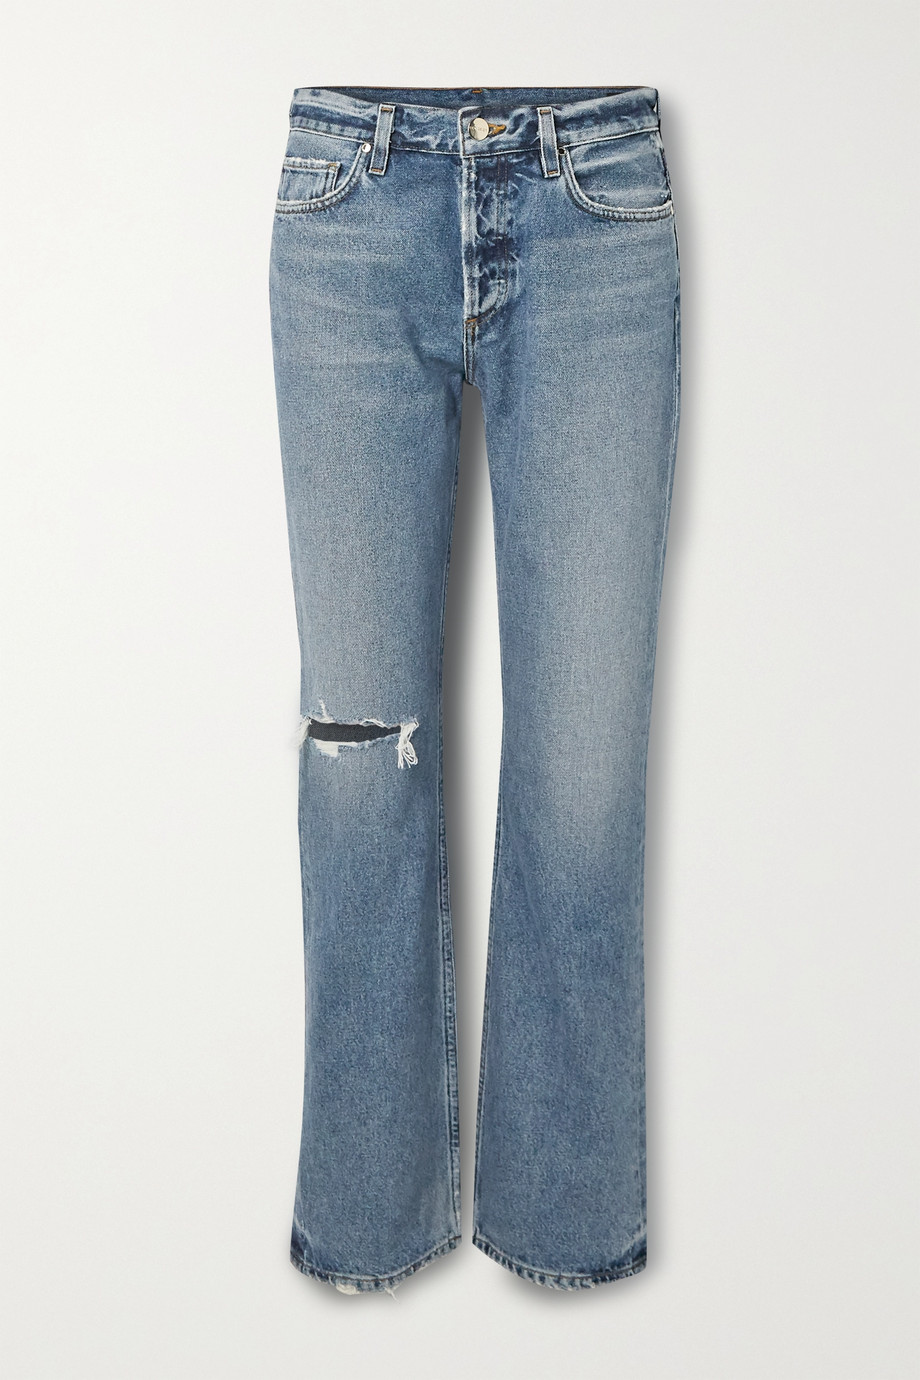 GOLDSIGN Nineties Boot distressed high-rise straight-leg jeans